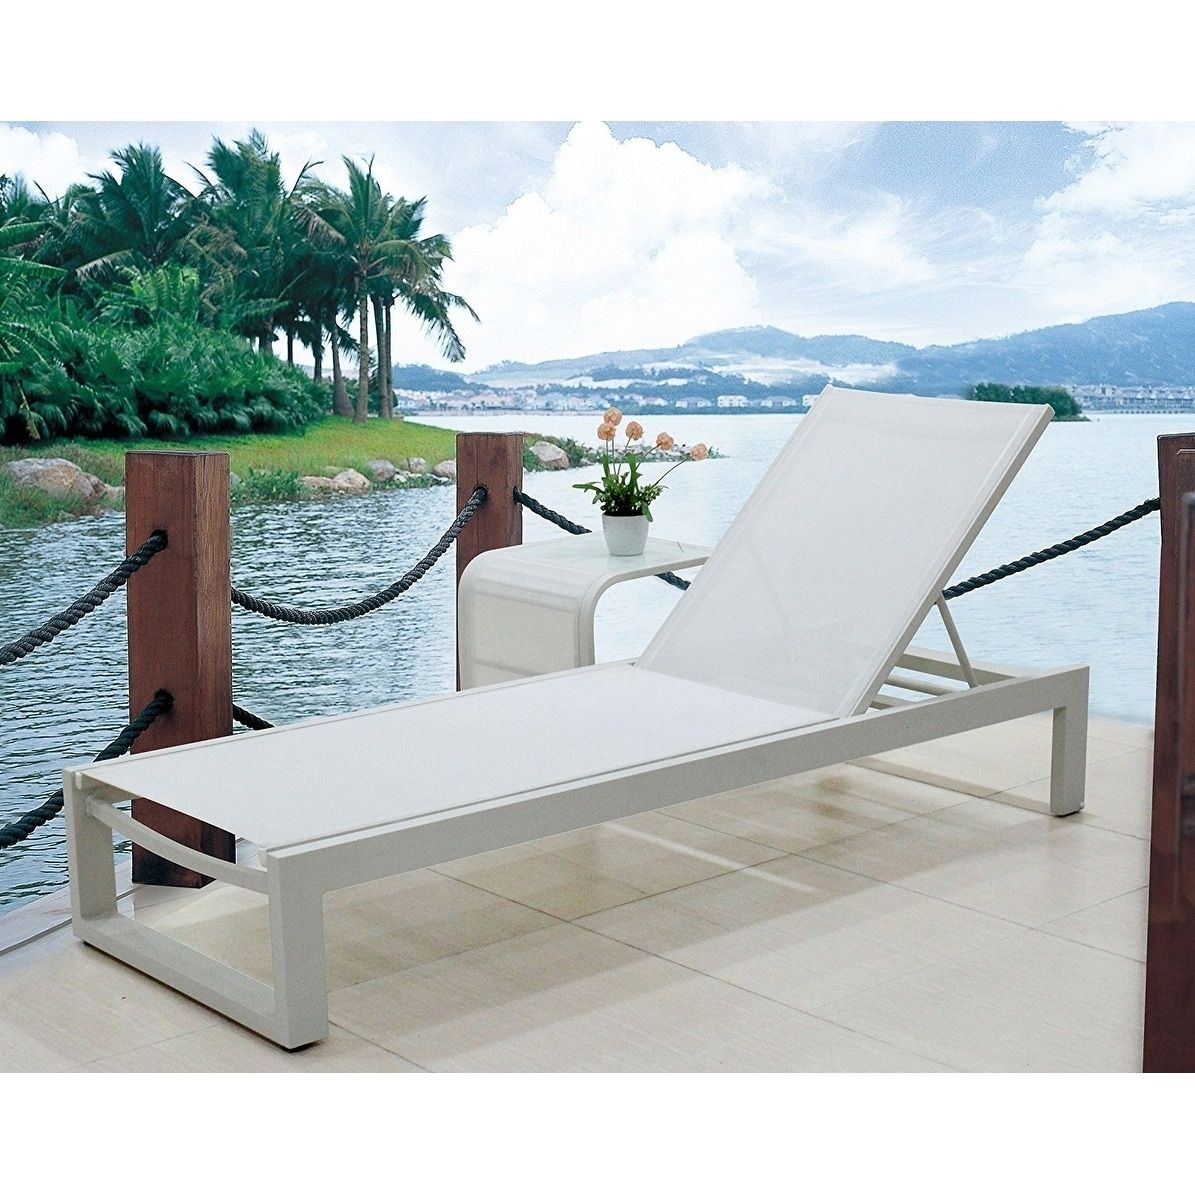 Infinity white all weather modern adjustable outdoor patio chaise lounge furniture pack of 2